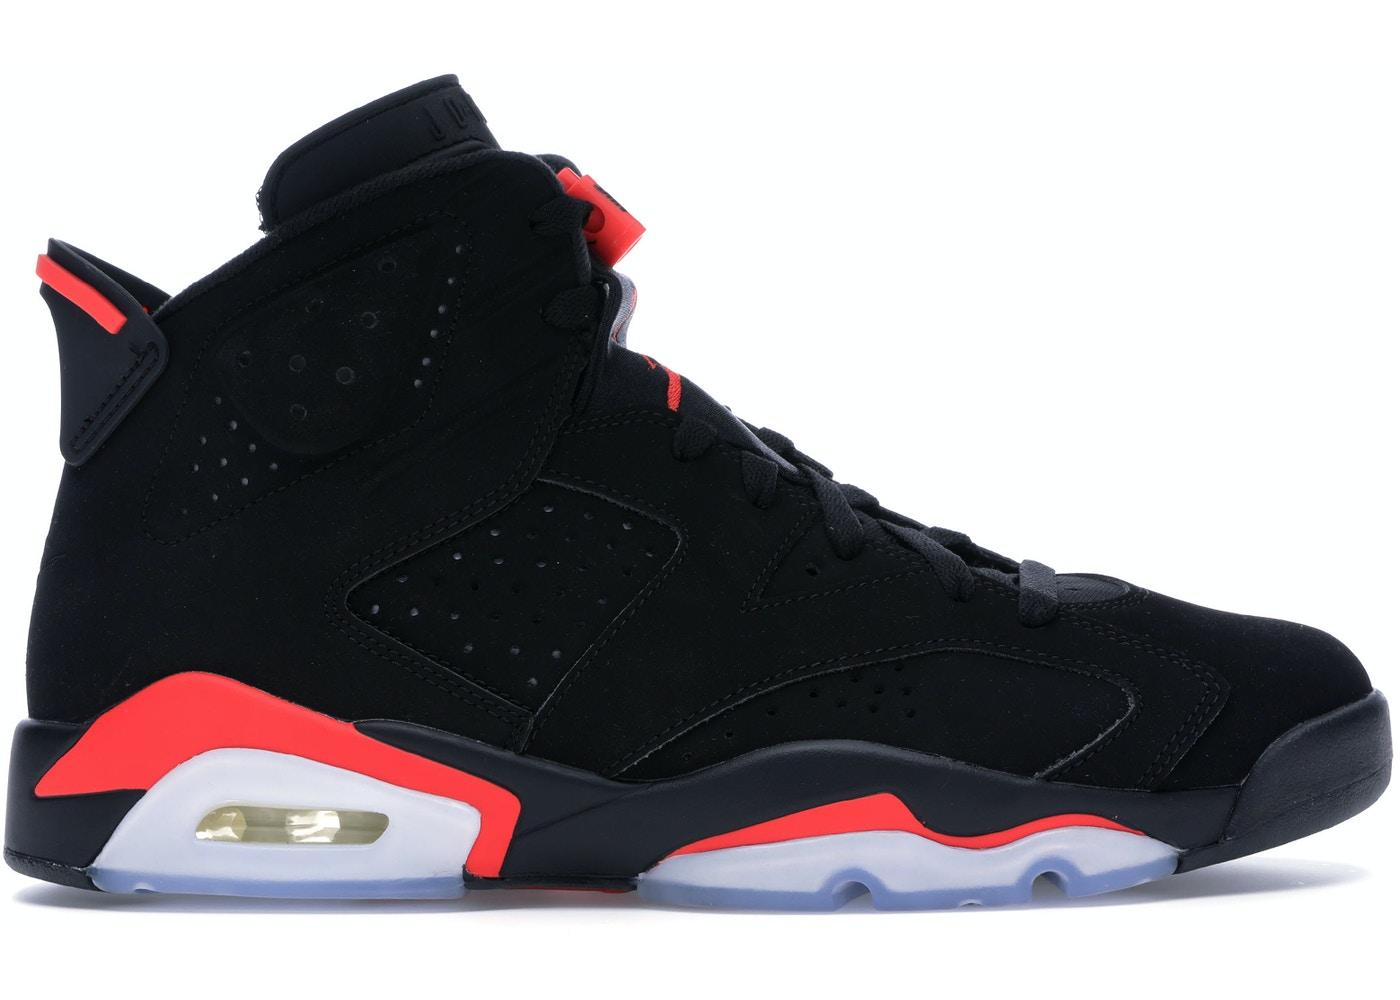 meilleures baskets 2d30a e2d45 Jordan 6 Retro Black Infrared (2019)